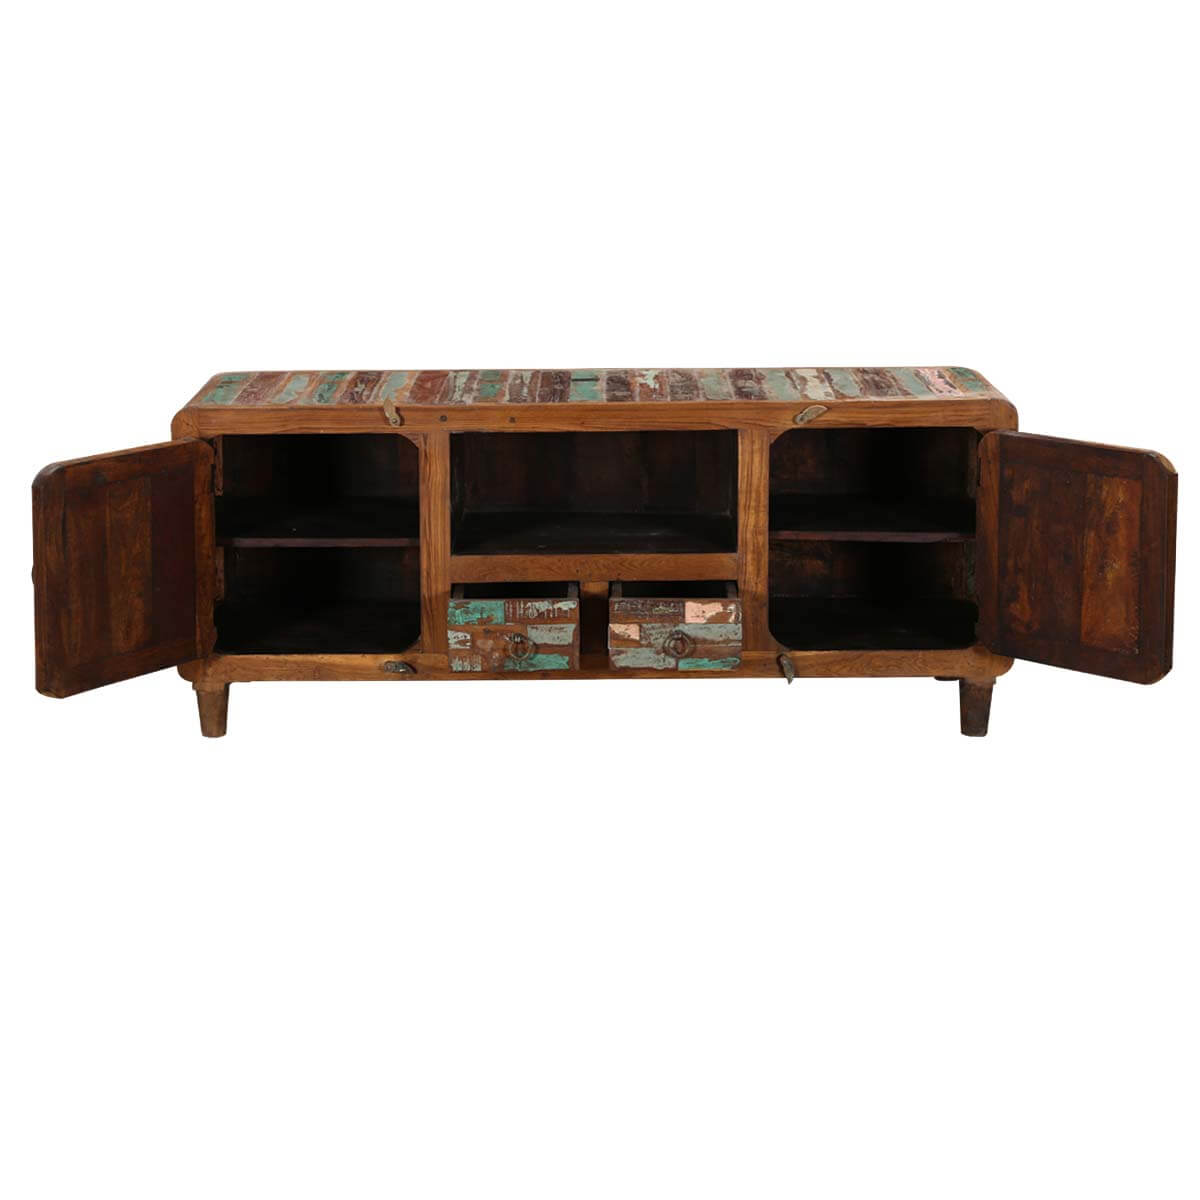 Tangier quot mosaic door solid wood rustic media console